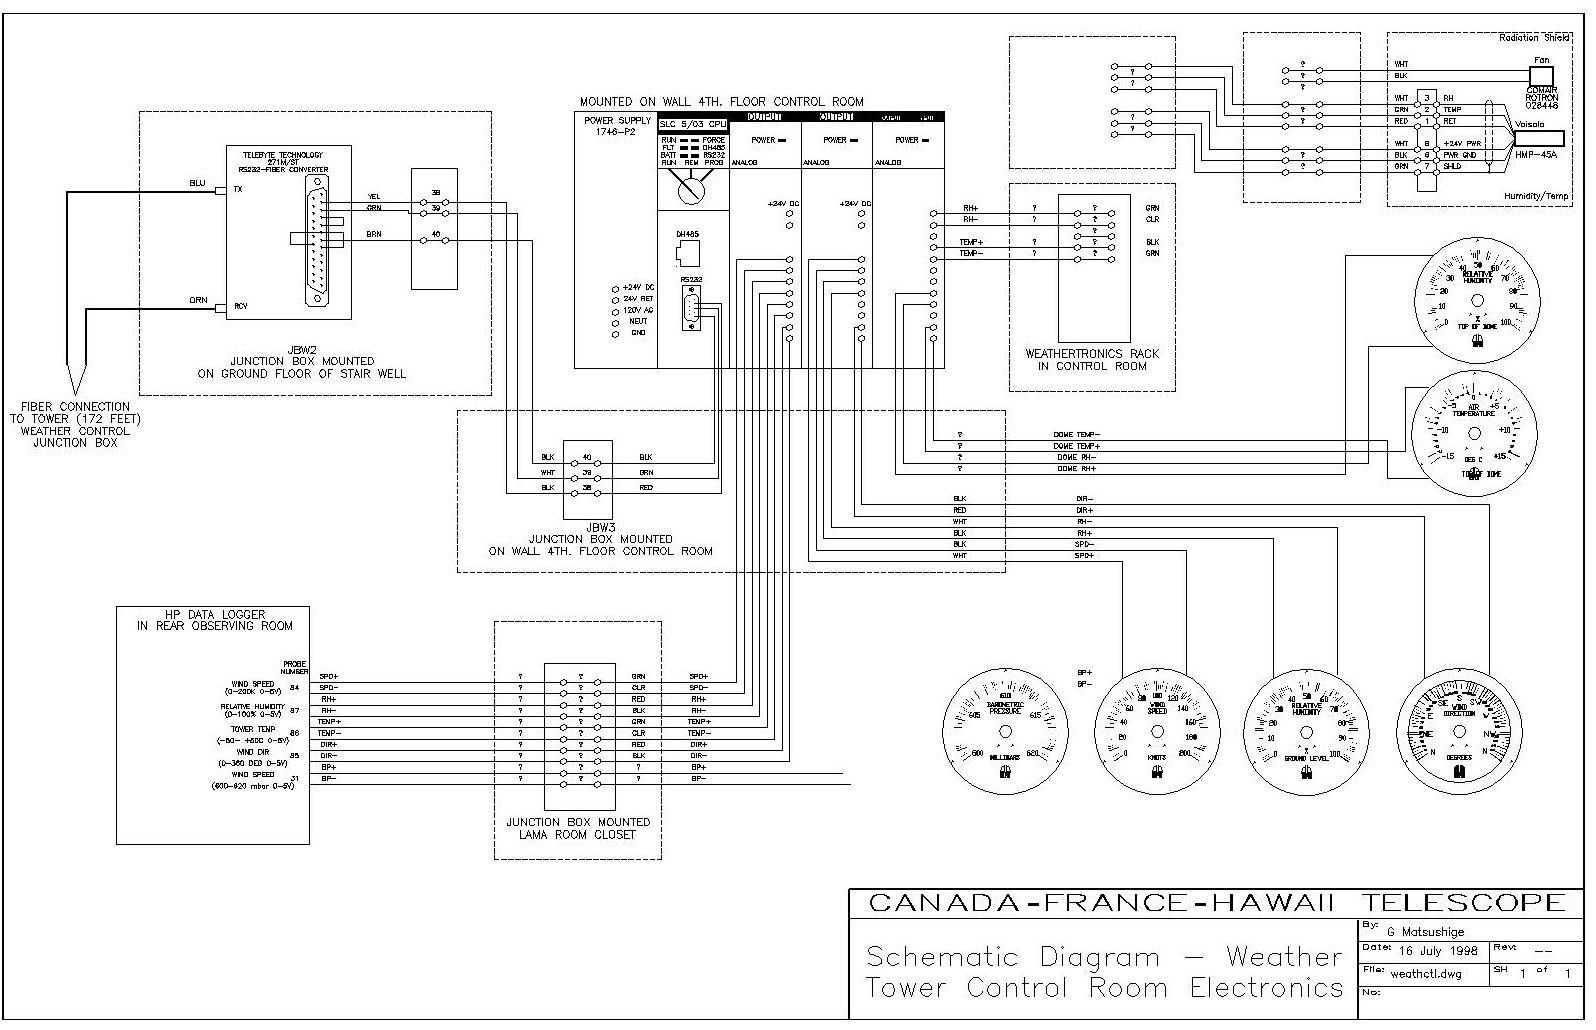 ctl_room_sch?resize\\d665%2C429 allen bradley 855t bpm10 wiring diagram efcaviation com 855e bcb wiring diagram at eliteediting.co